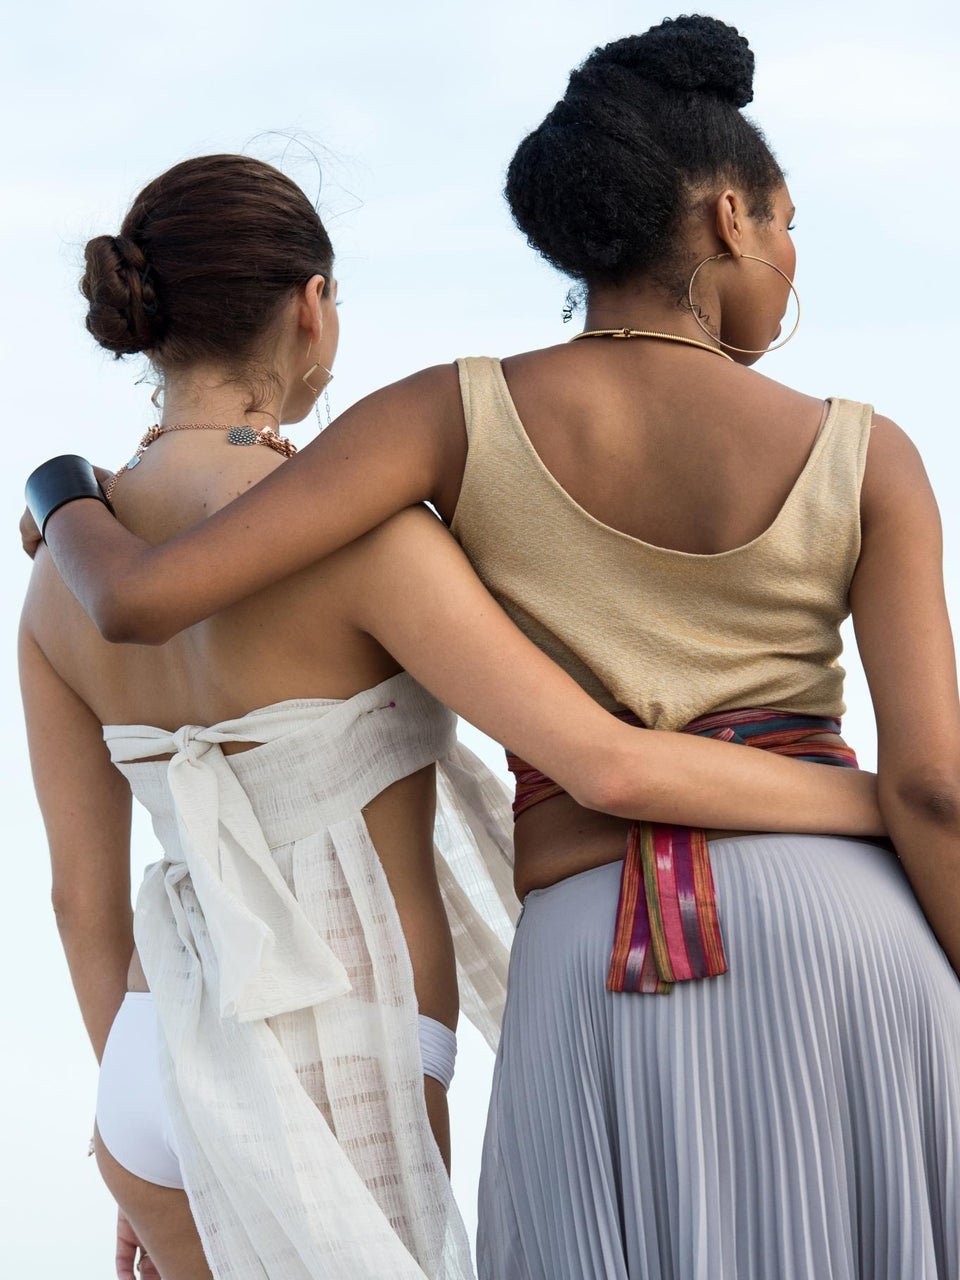 Intimacy Intervention: 'I've Always Been A Lesbian, But Now I Want To Date A Man'